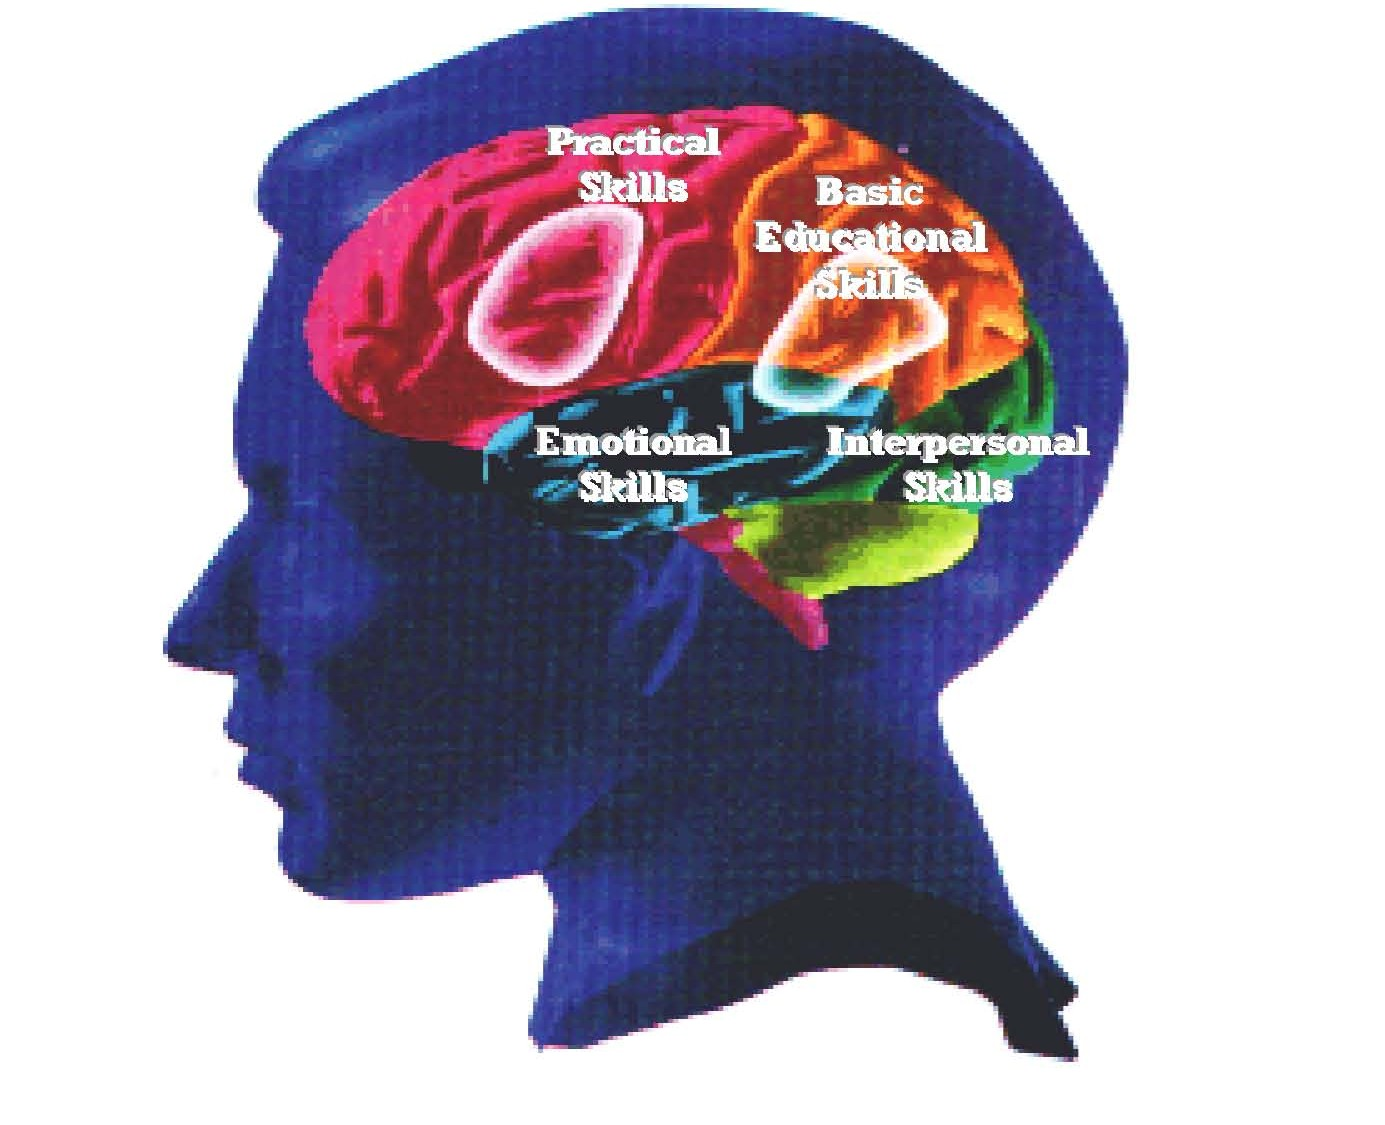 an analysis of multiple intelligence in human beings Version for speakers of other languages learning english) to analyze the  relation between  the concept of intelligence being multifaceted was defended  by  hand, gardner's research showing the plurality of human cognitive ability  and.